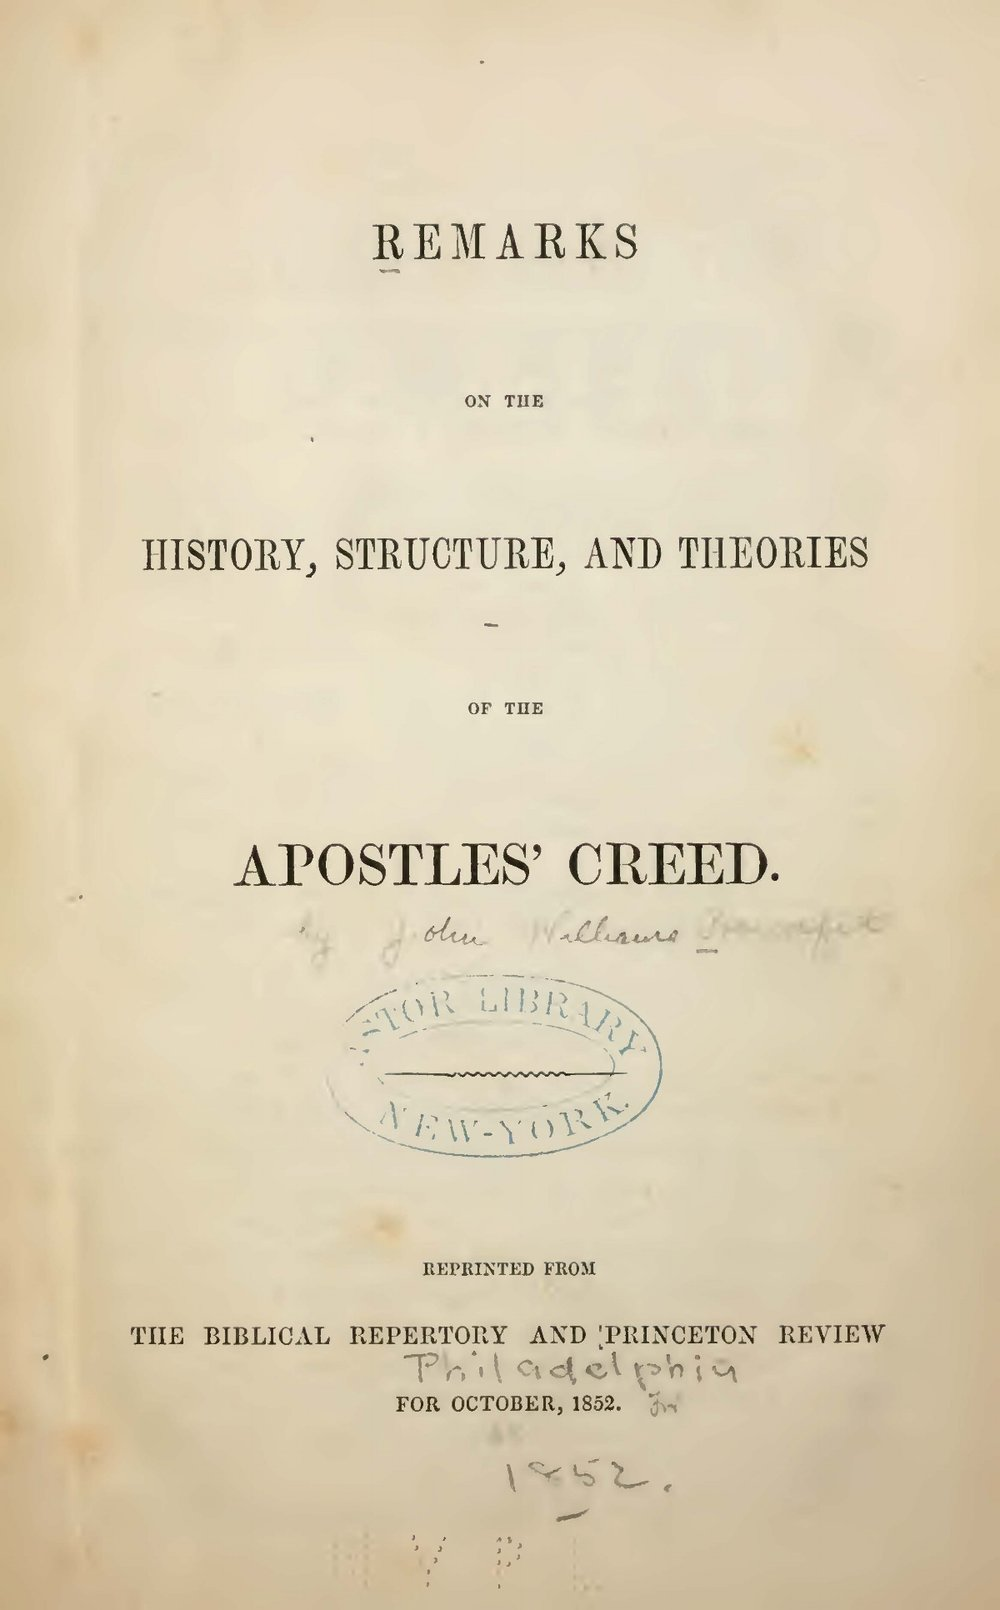 Proudfit, John Williams, Remarks on the History, Structure, and Theories of the Apostles' Creed Title Page.jpg